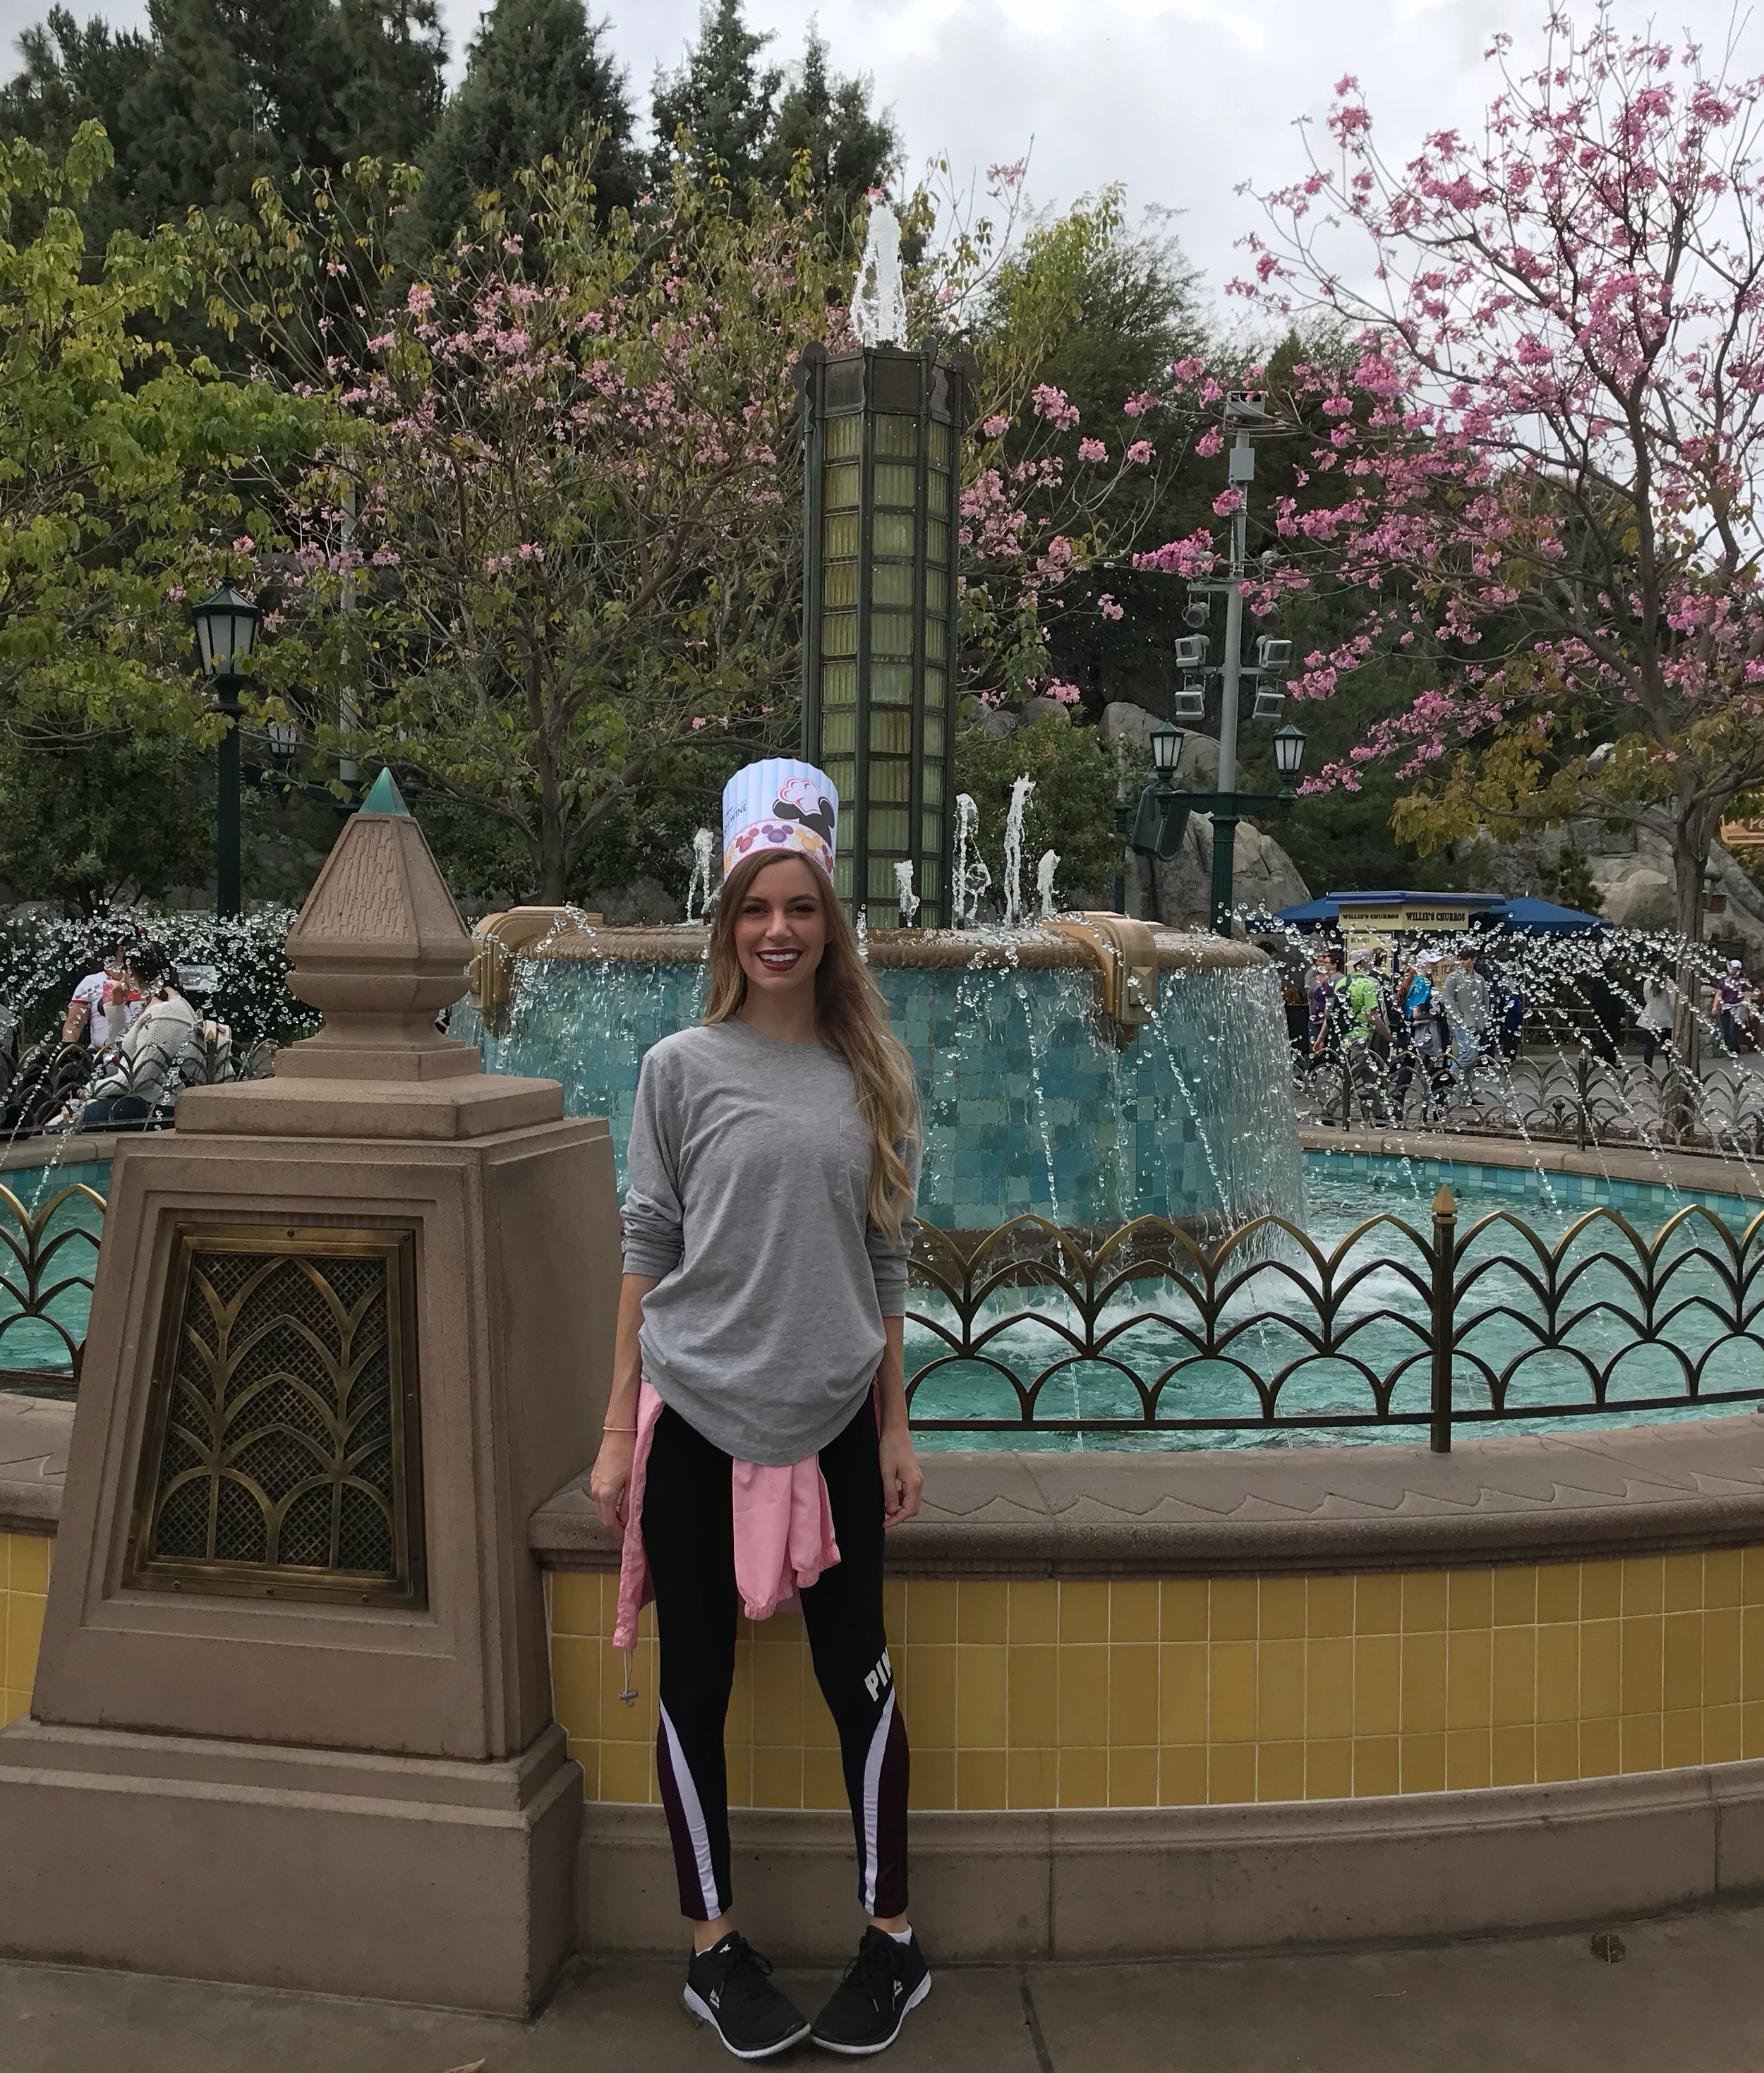 So many activities for the kids too. I had to join in on the fun with this Chef Mickey hat!